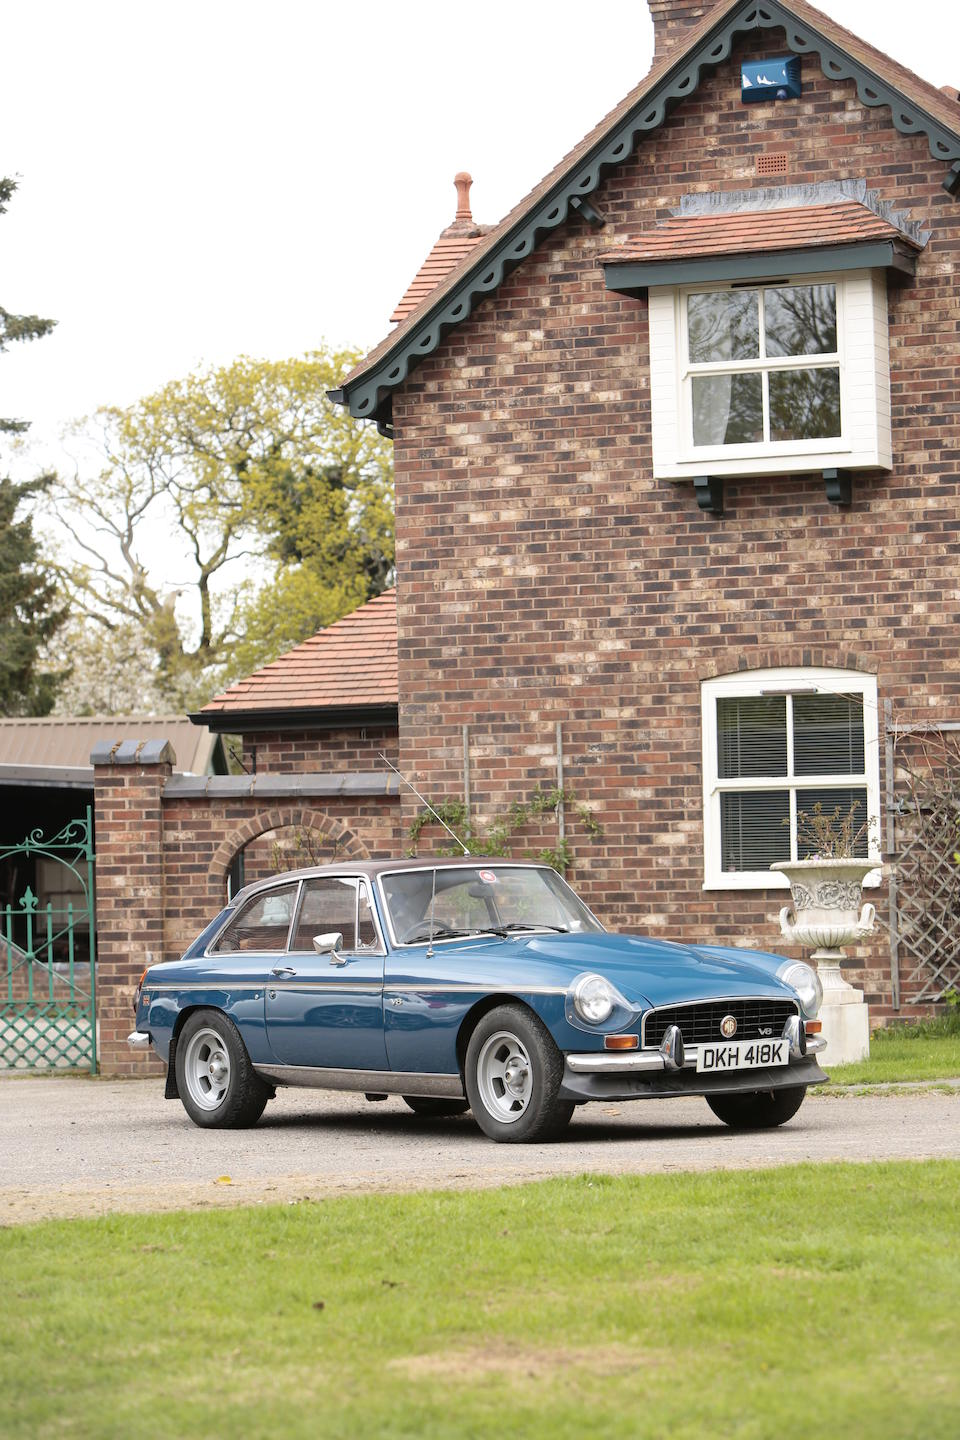 1971 MG B GT V8 Coupé by Costello  Chassis no. GHD5-2599819G Engine no. 18V582-H328